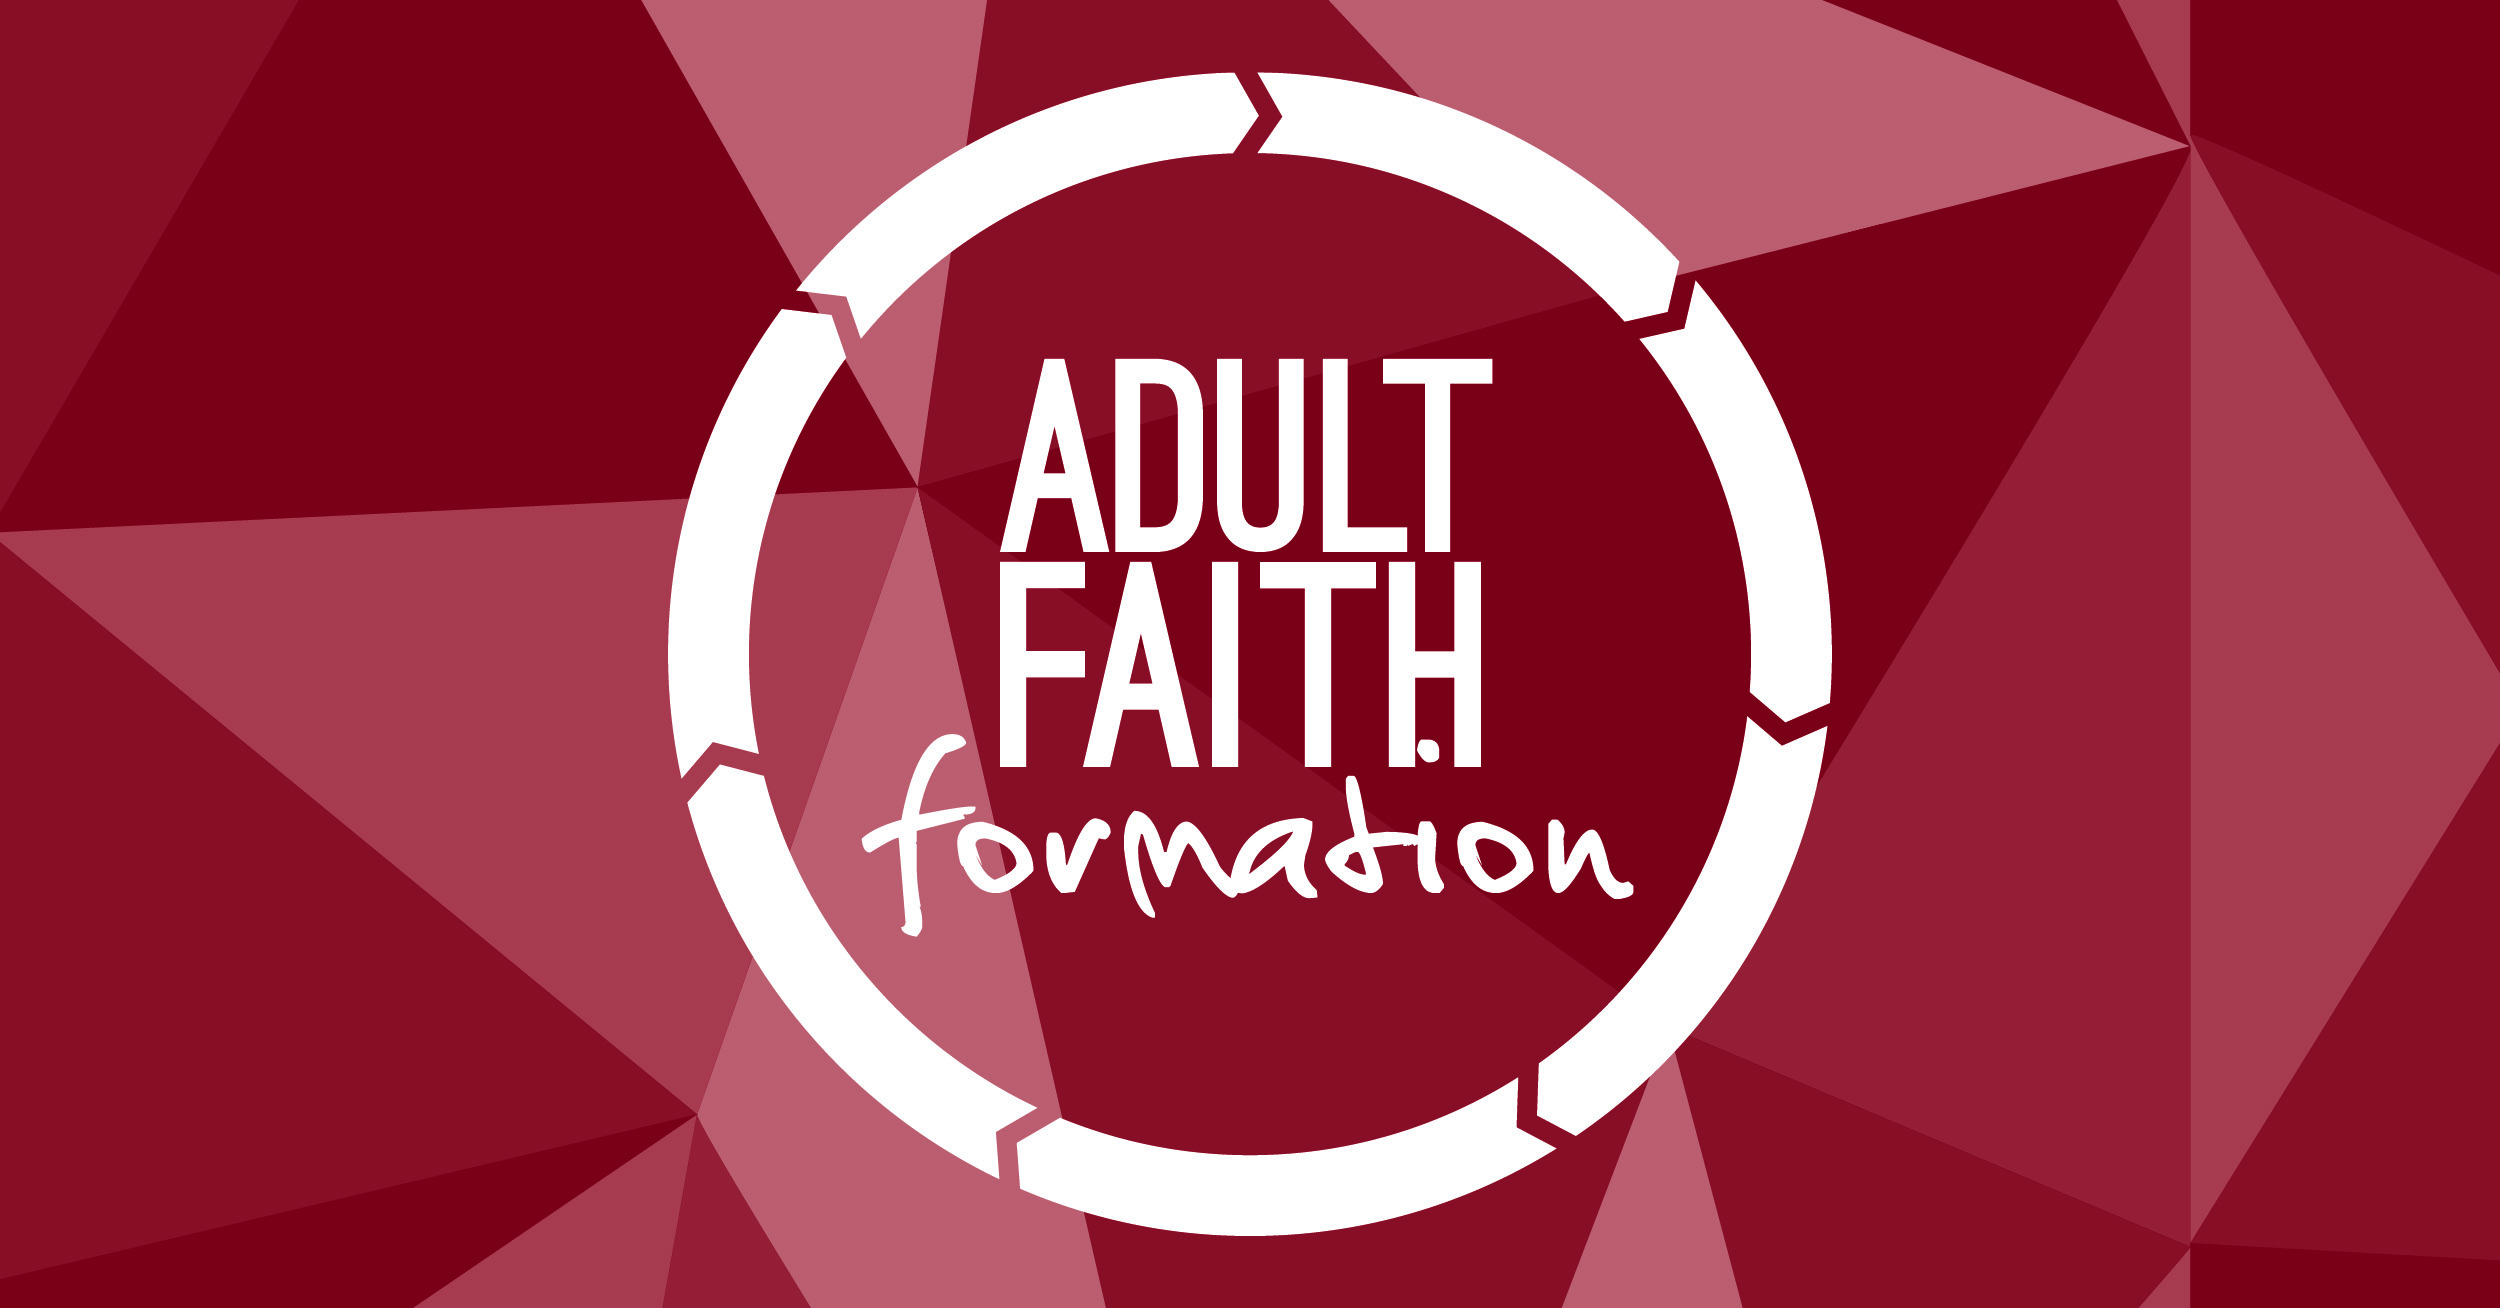 Adult Faith Formation: The Apostles' Creed